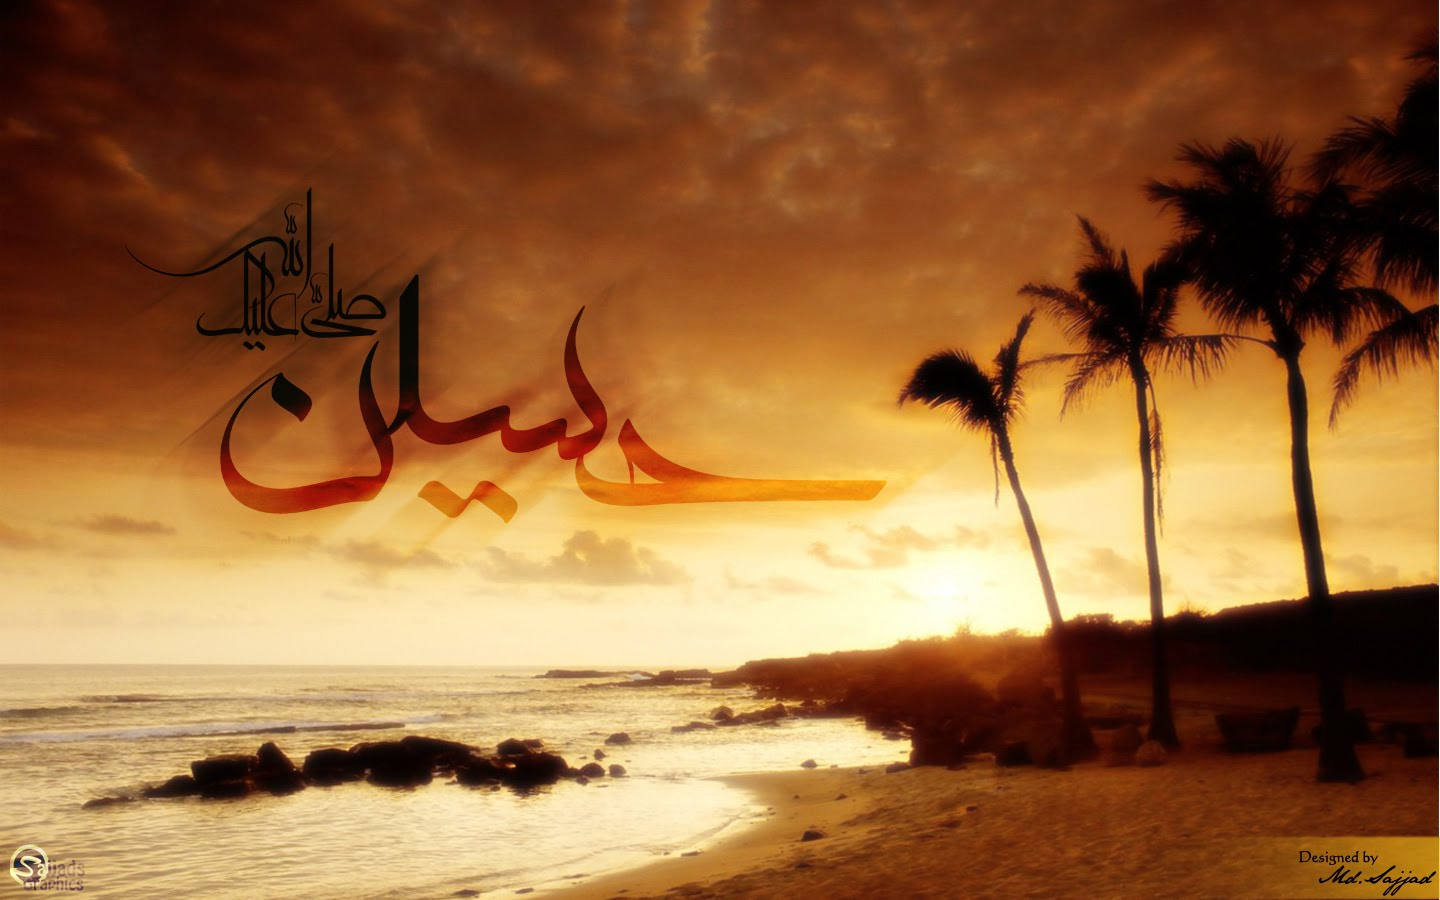 http://4.bp.blogspot.com/_T1xXmXoMo1I/TID2lDvhaMI/AAAAAAAAABw/fjextmj74t4/s1600/imam_hussain_as___high_resolution_wallpaper-wide.jpg